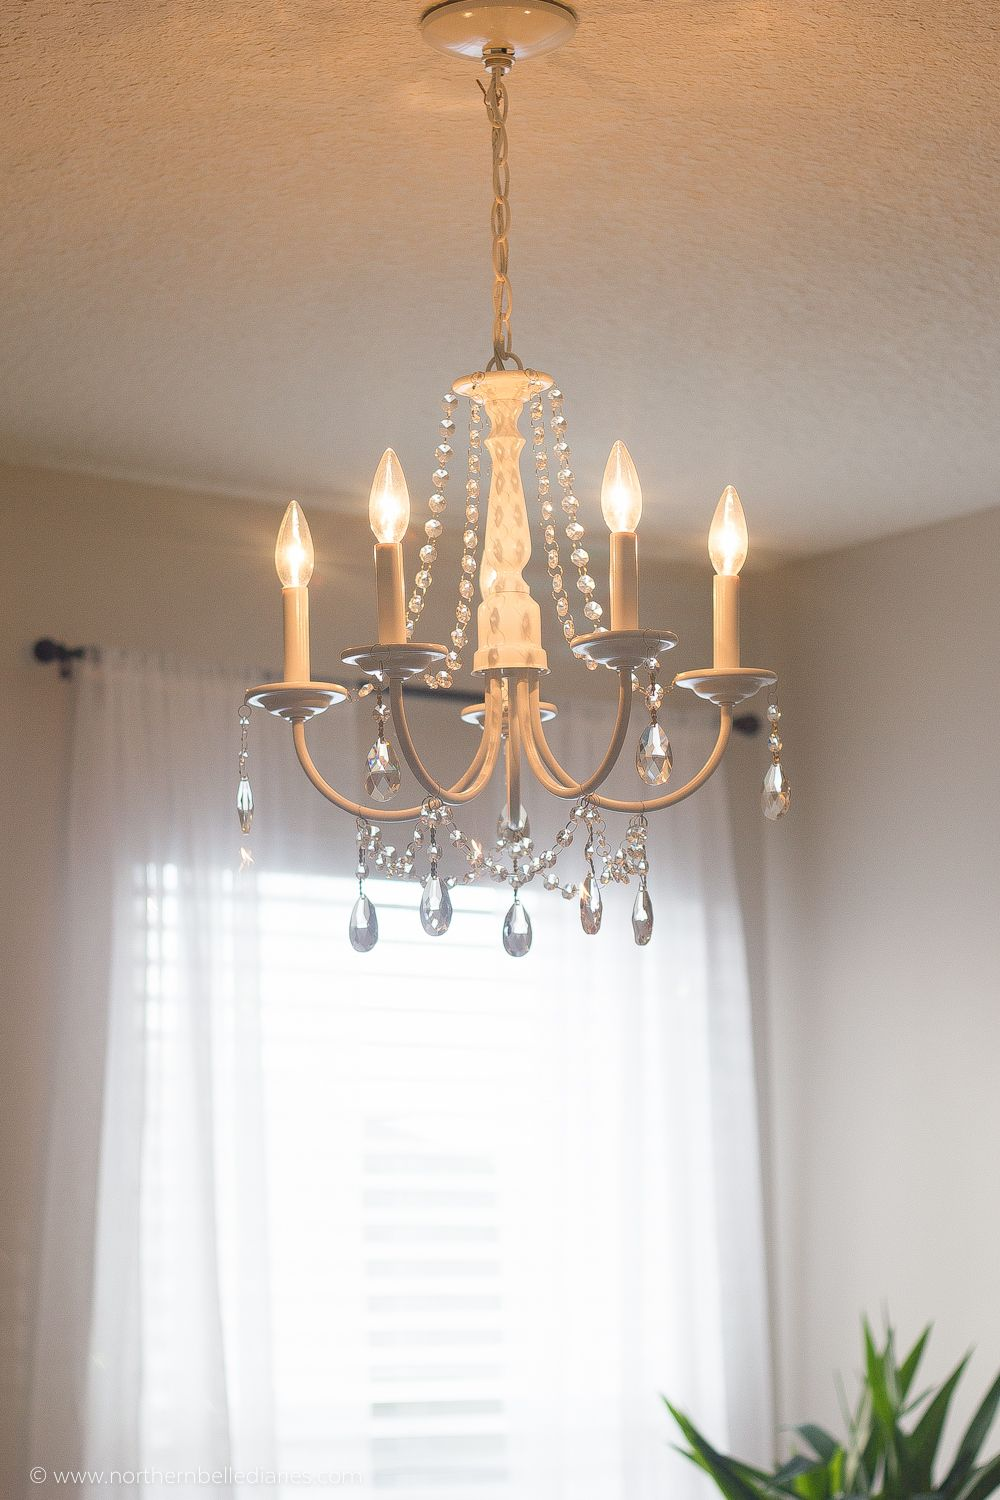 DIY Crystal Chandelier Easy Tutorial Pinterest Chandeliers - Chandelier crystals diy